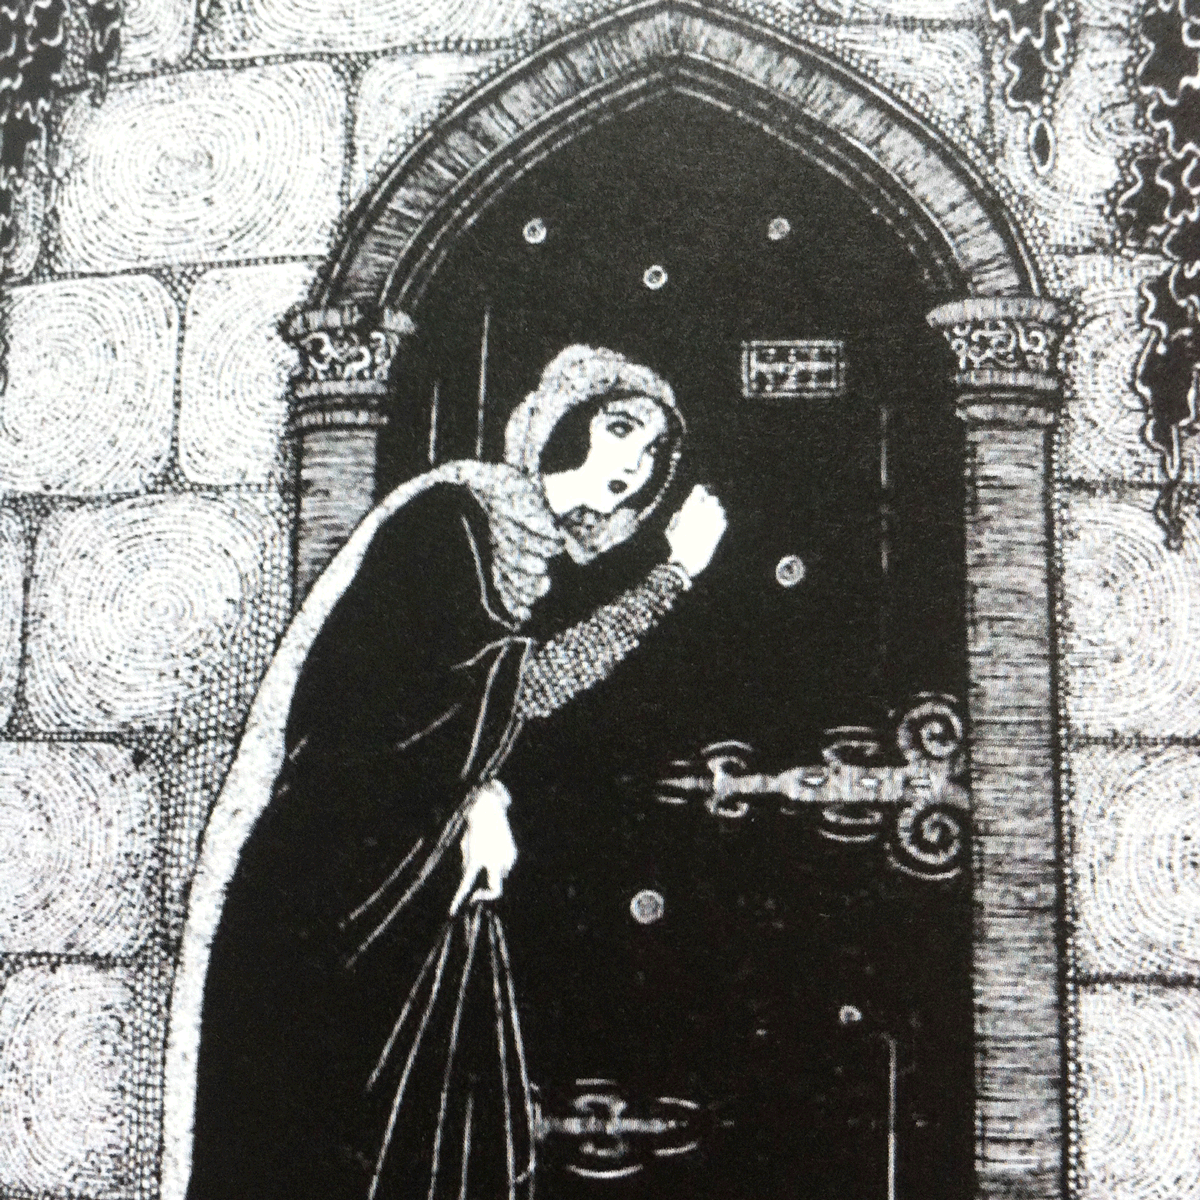 When she came to the gate in the Wall she knocked upon it three times. Illustrations by Jennie Harbour for Beauty and the Beast. From My book of Favourite Fairy Tales.